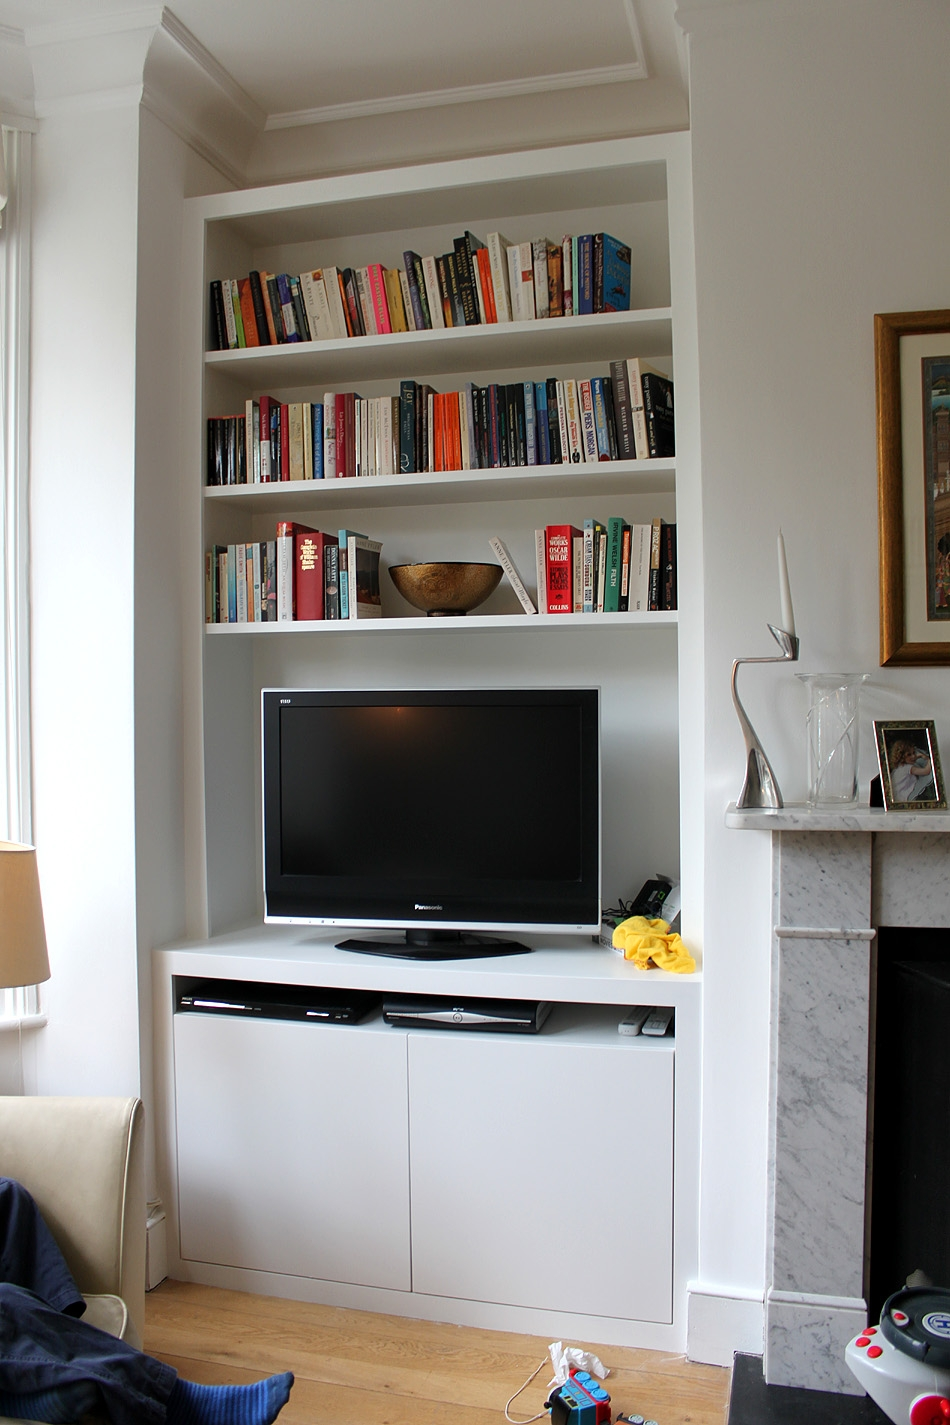 Fitted Wardrobes Bookcases Shelving Floating Shelves London Intended For Tv Cabinet And Bookcase (#7 of 15)